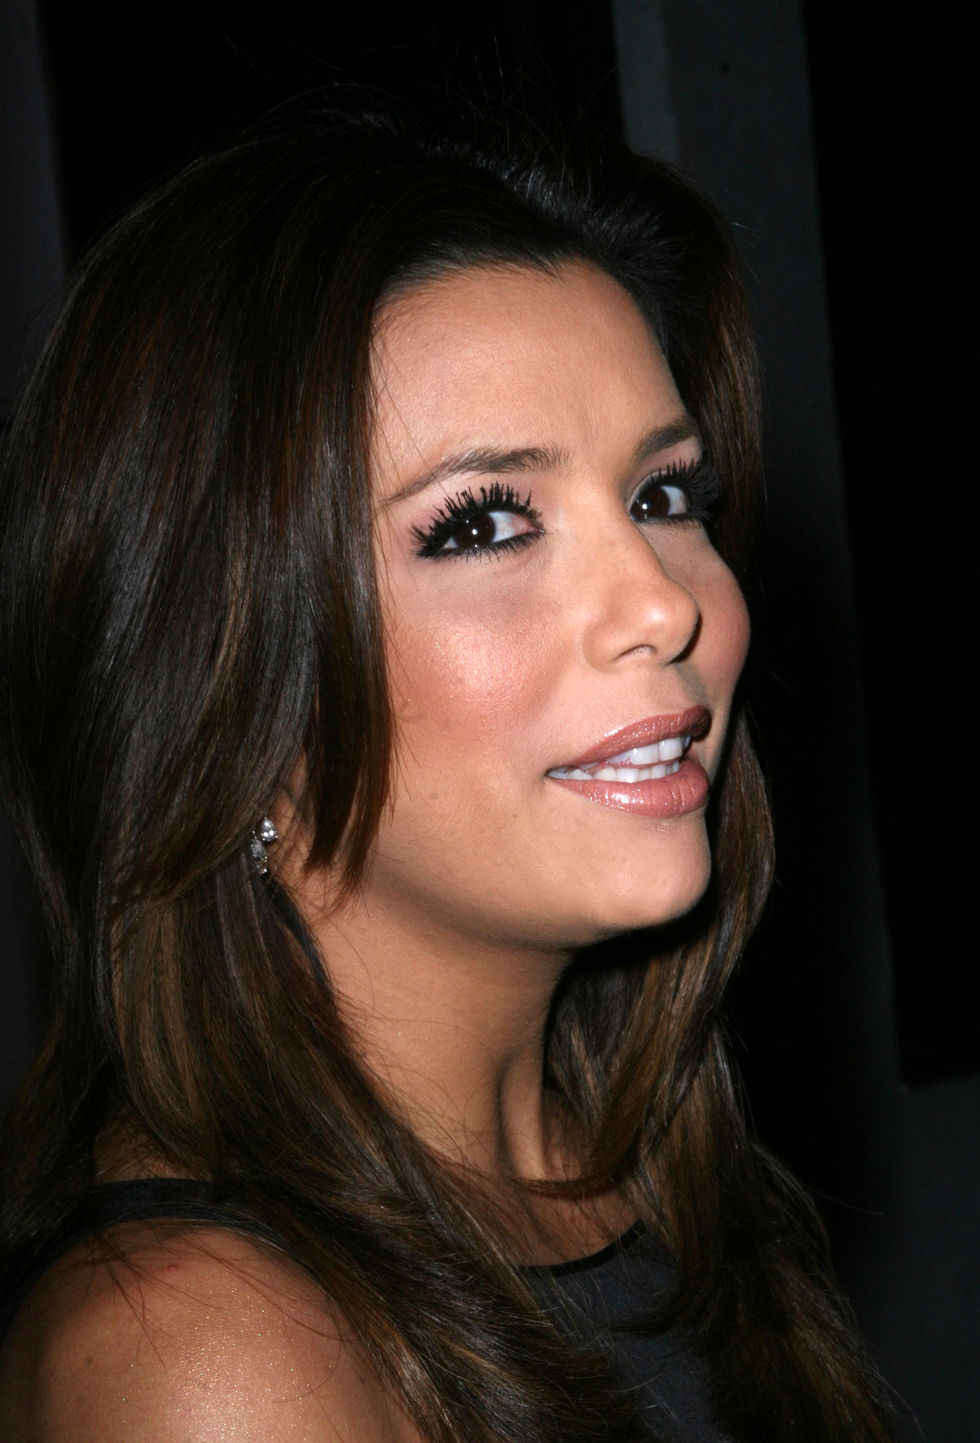 eva-longoria-hosting-2009-beso-new-years-eve-party-01